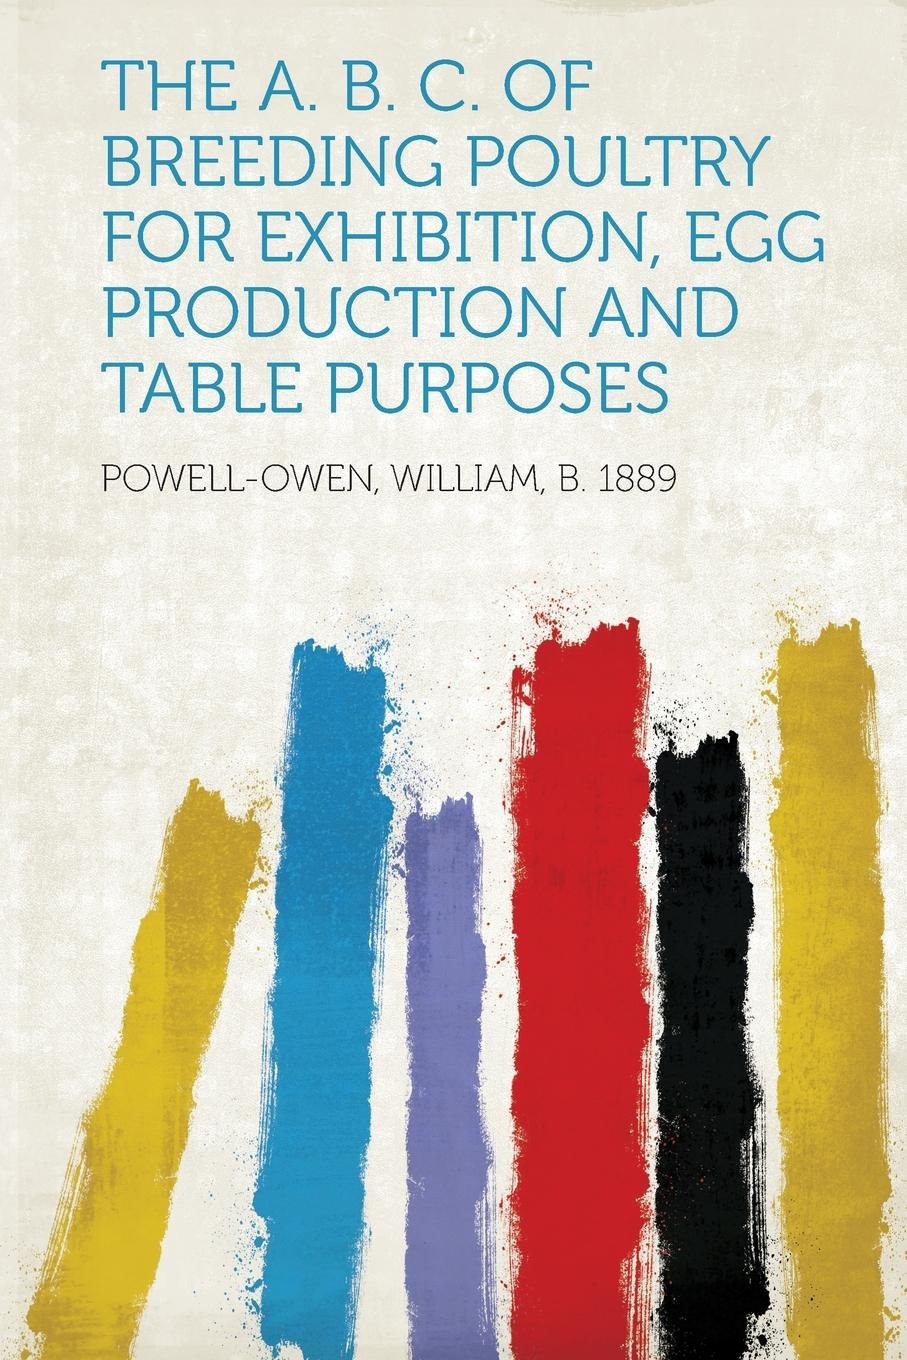 Download The A. B. C. of Breeding Poultry for Exhibition, Egg Production and Table Purposes ebook